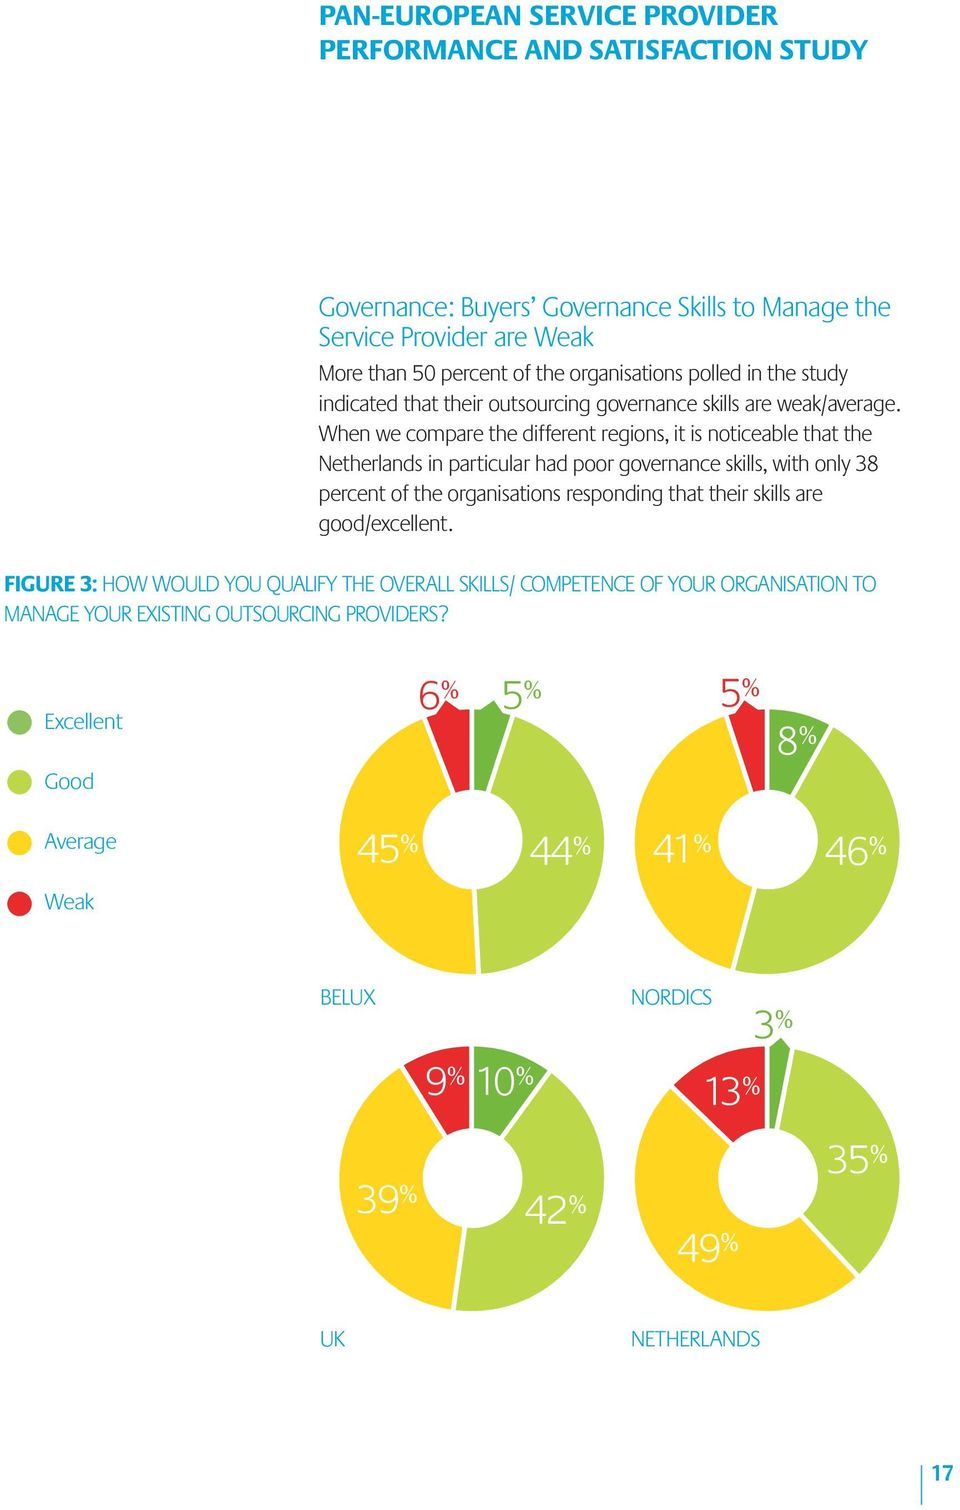 When we compare the different regions, it is noticeable that the Netherlands in particular had poor governance skills, with only 38 percent of the organisations responding that their